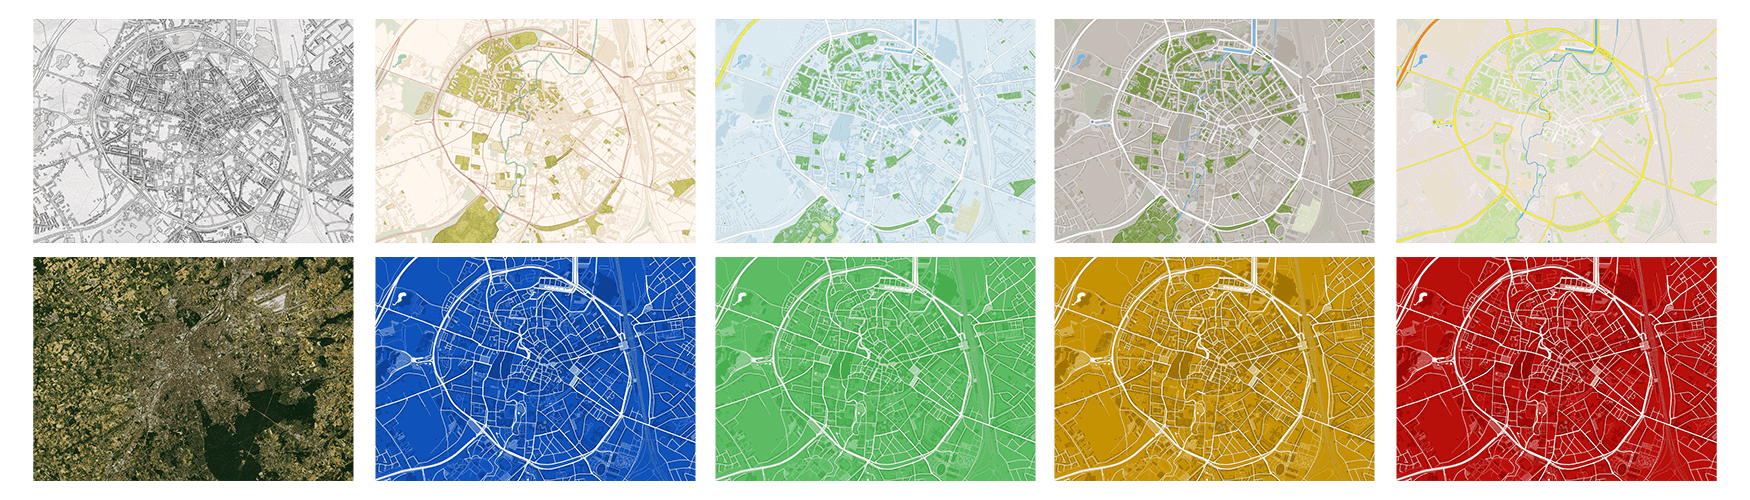 city map designs